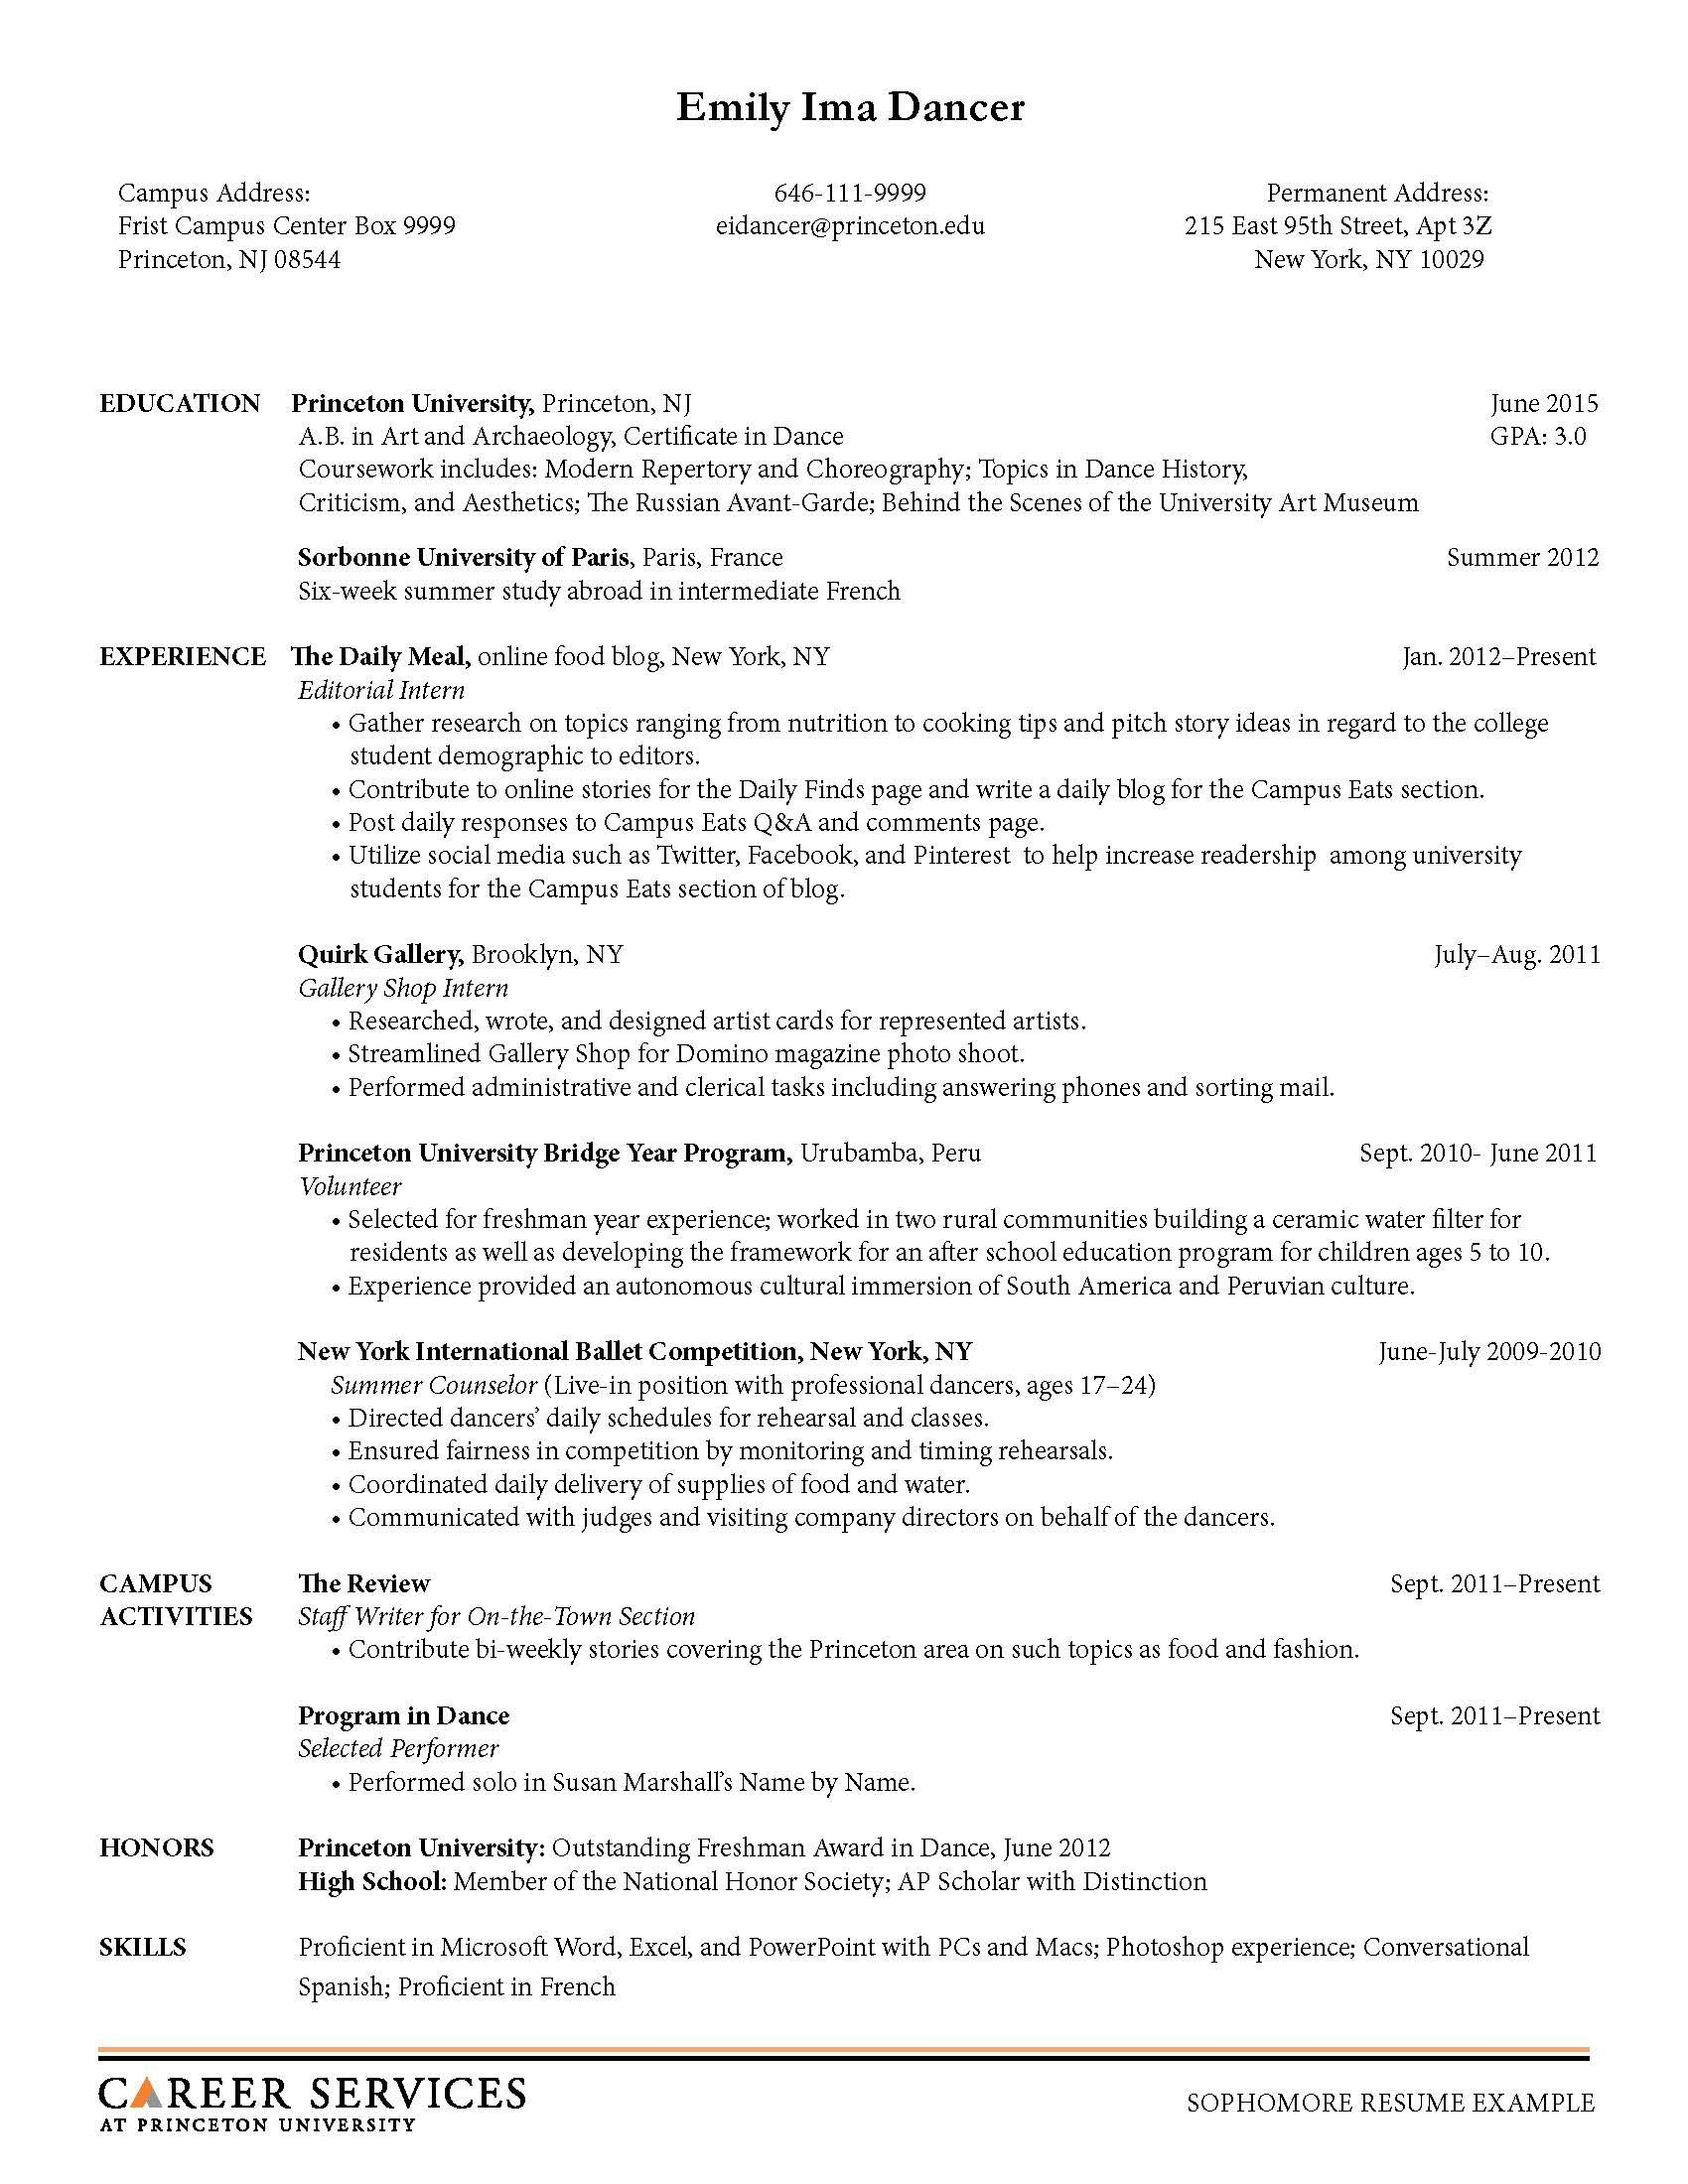 Picnictoimpeachus  Marvelous Sample Resume Resume And Career On Pinterest With Entrancing Budget Analyst Resume Besides Receptionist Job Description For Resume Furthermore General Laborer Resume With Attractive Resume Video Also Part Time Job Resume In Addition National Resume Writers Association And Resume Dorothy Parker As Well As Management Resume Examples Additionally Resume Templates Word Free Download From Pinterestcom With Picnictoimpeachus  Entrancing Sample Resume Resume And Career On Pinterest With Attractive Budget Analyst Resume Besides Receptionist Job Description For Resume Furthermore General Laborer Resume And Marvelous Resume Video Also Part Time Job Resume In Addition National Resume Writers Association From Pinterestcom